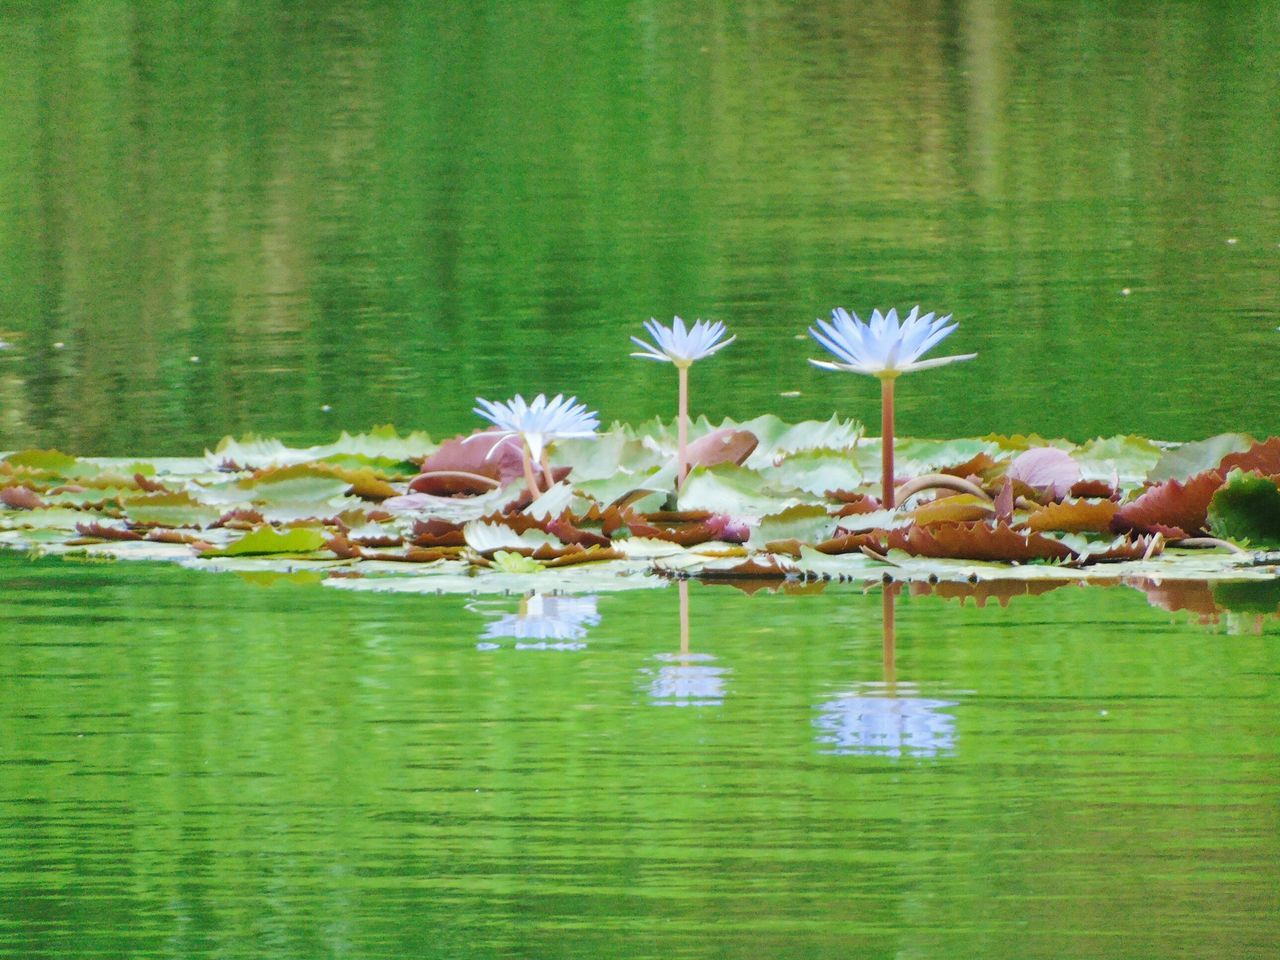 lake, water, reflection, flower, nature, beauty in nature, no people, waterfront, floating on water, water lily, green color, lotus water lily, day, outdoors, leaf, grass, lily pad, freshness, fragility, close-up